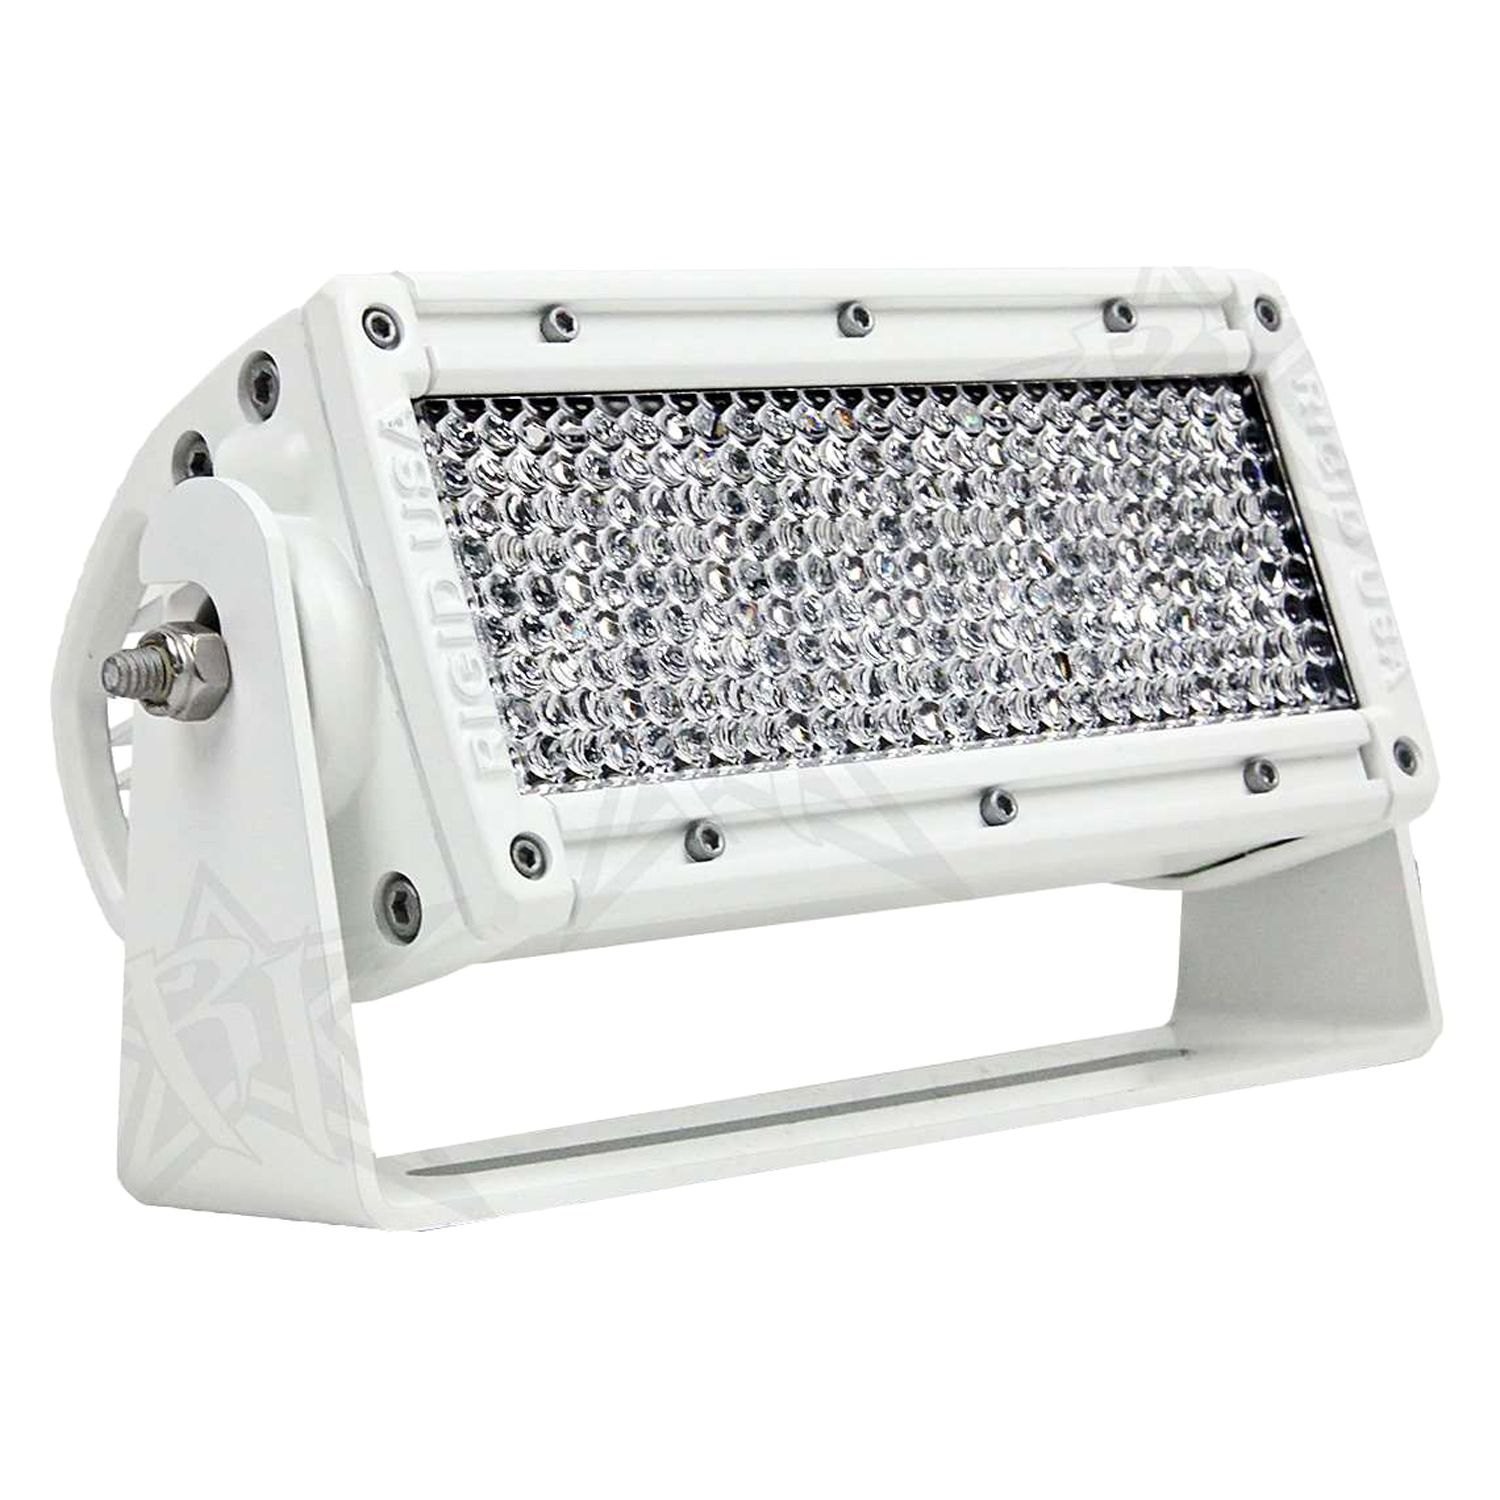 Rigid industries cradle mount for e series led light bar industries white powder coat cradle mount for 10 e series led light bar aloadofball Images